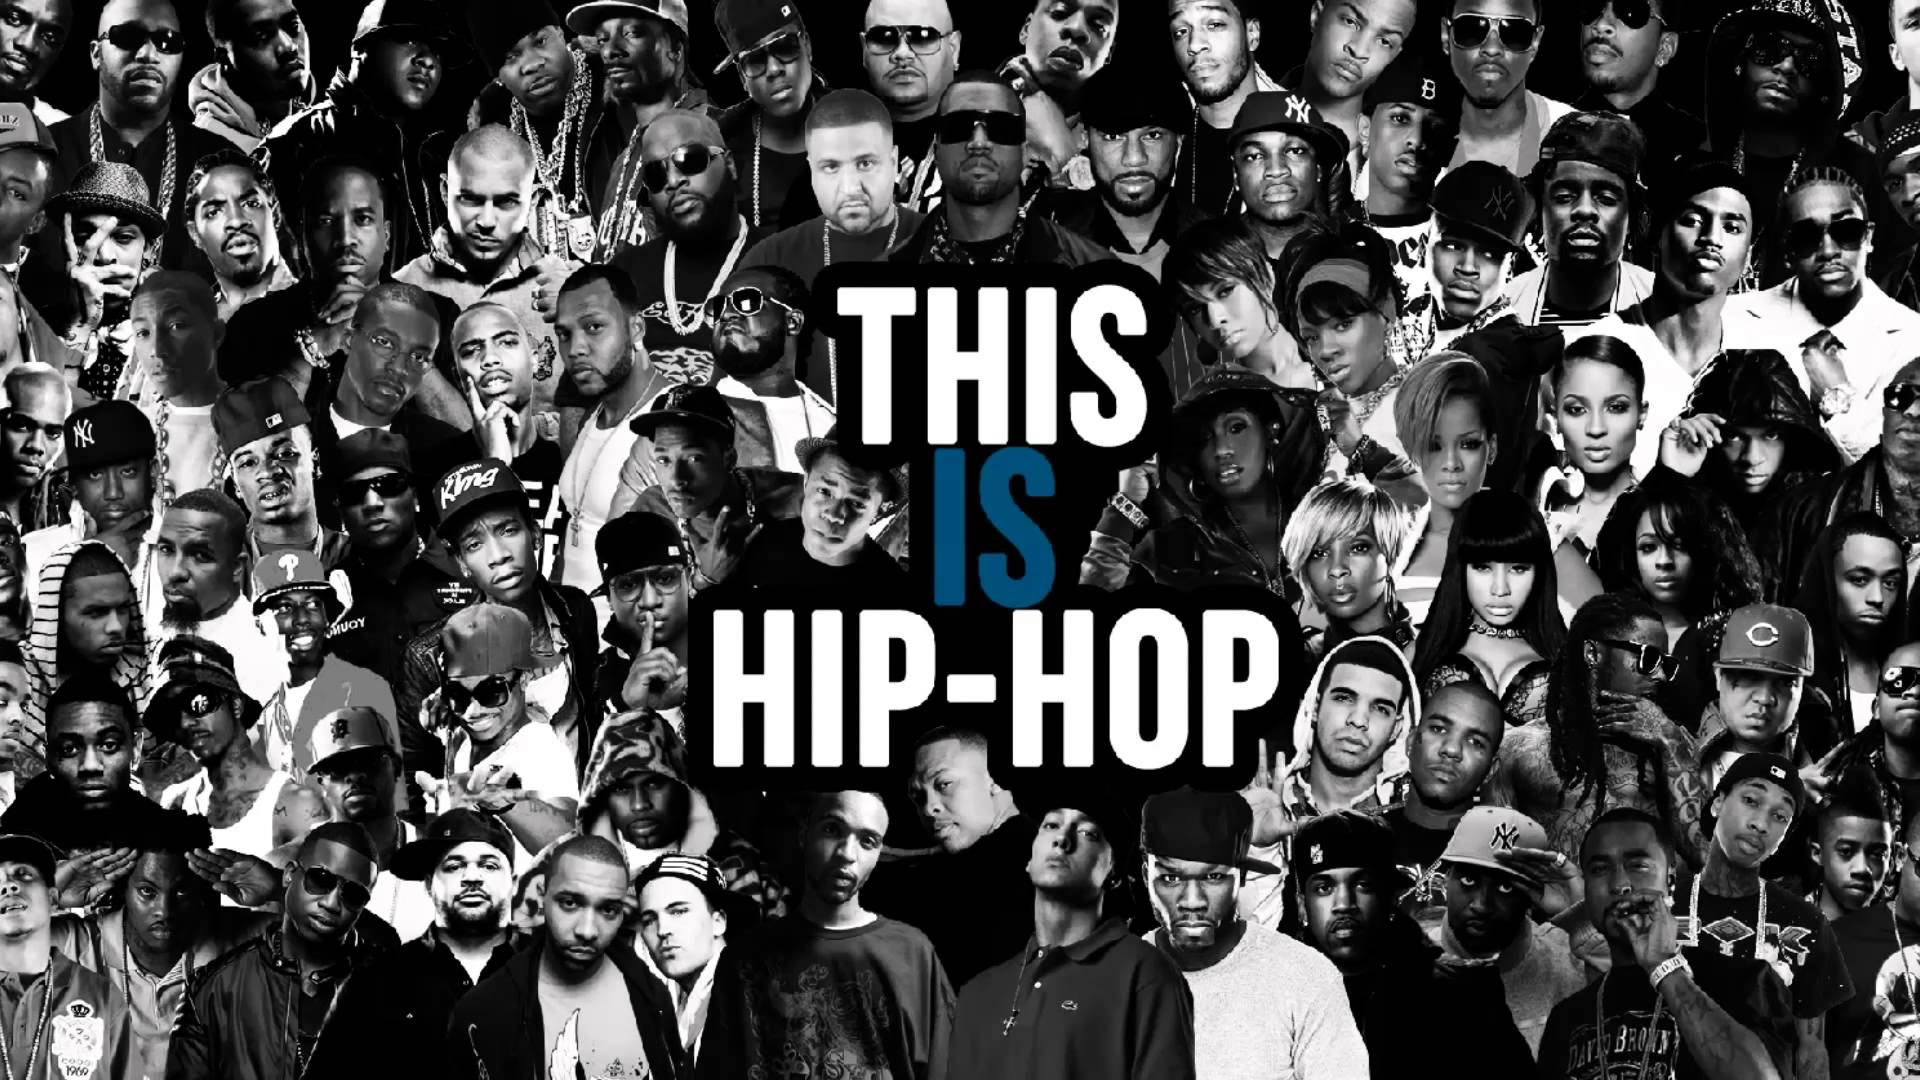 Top Rappers Wallpapers - Top Free Top Rappers Backgrounds